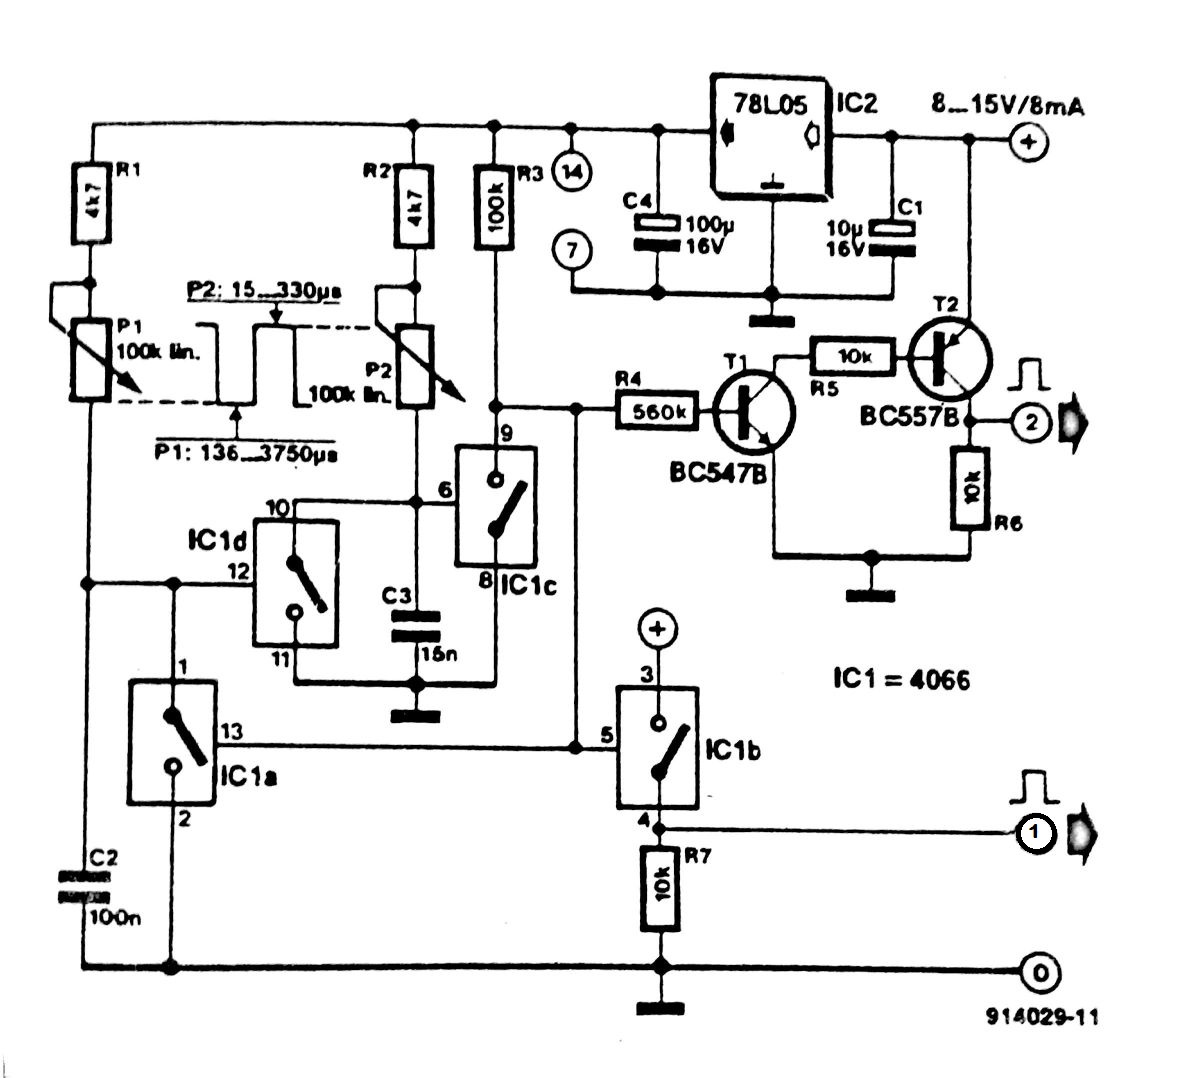 Skoda Ac Wiring Diagrams Block Diagram Explanation Generac Schematic Stateofindiana Co Plug